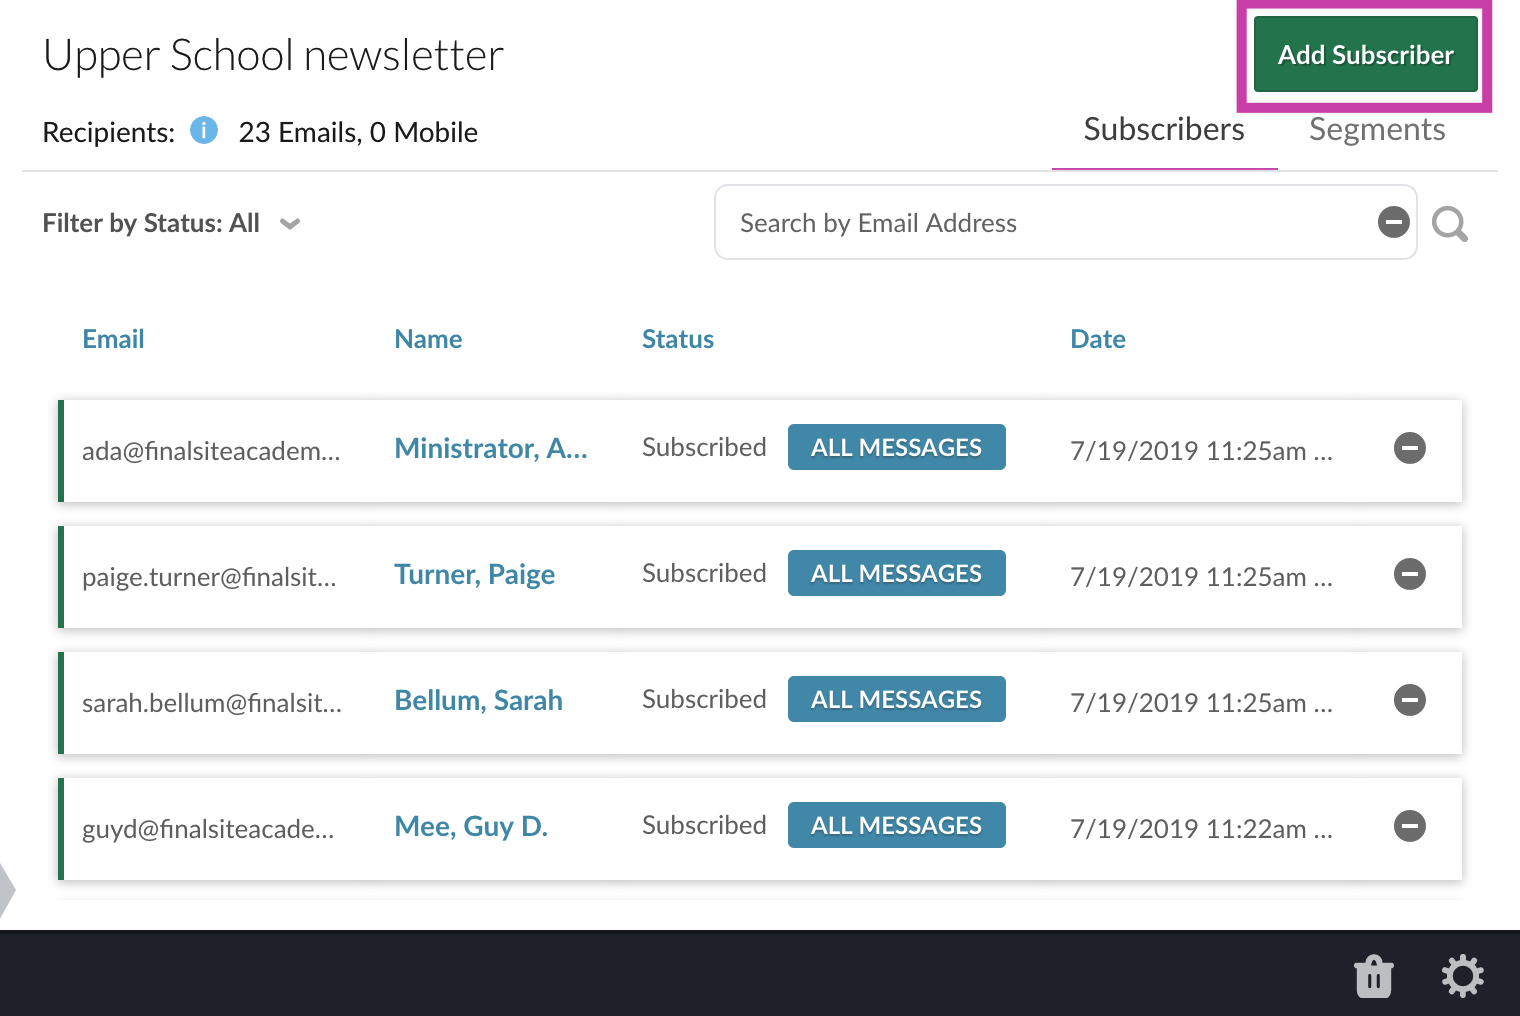 Add subscriber button on mailing list screen